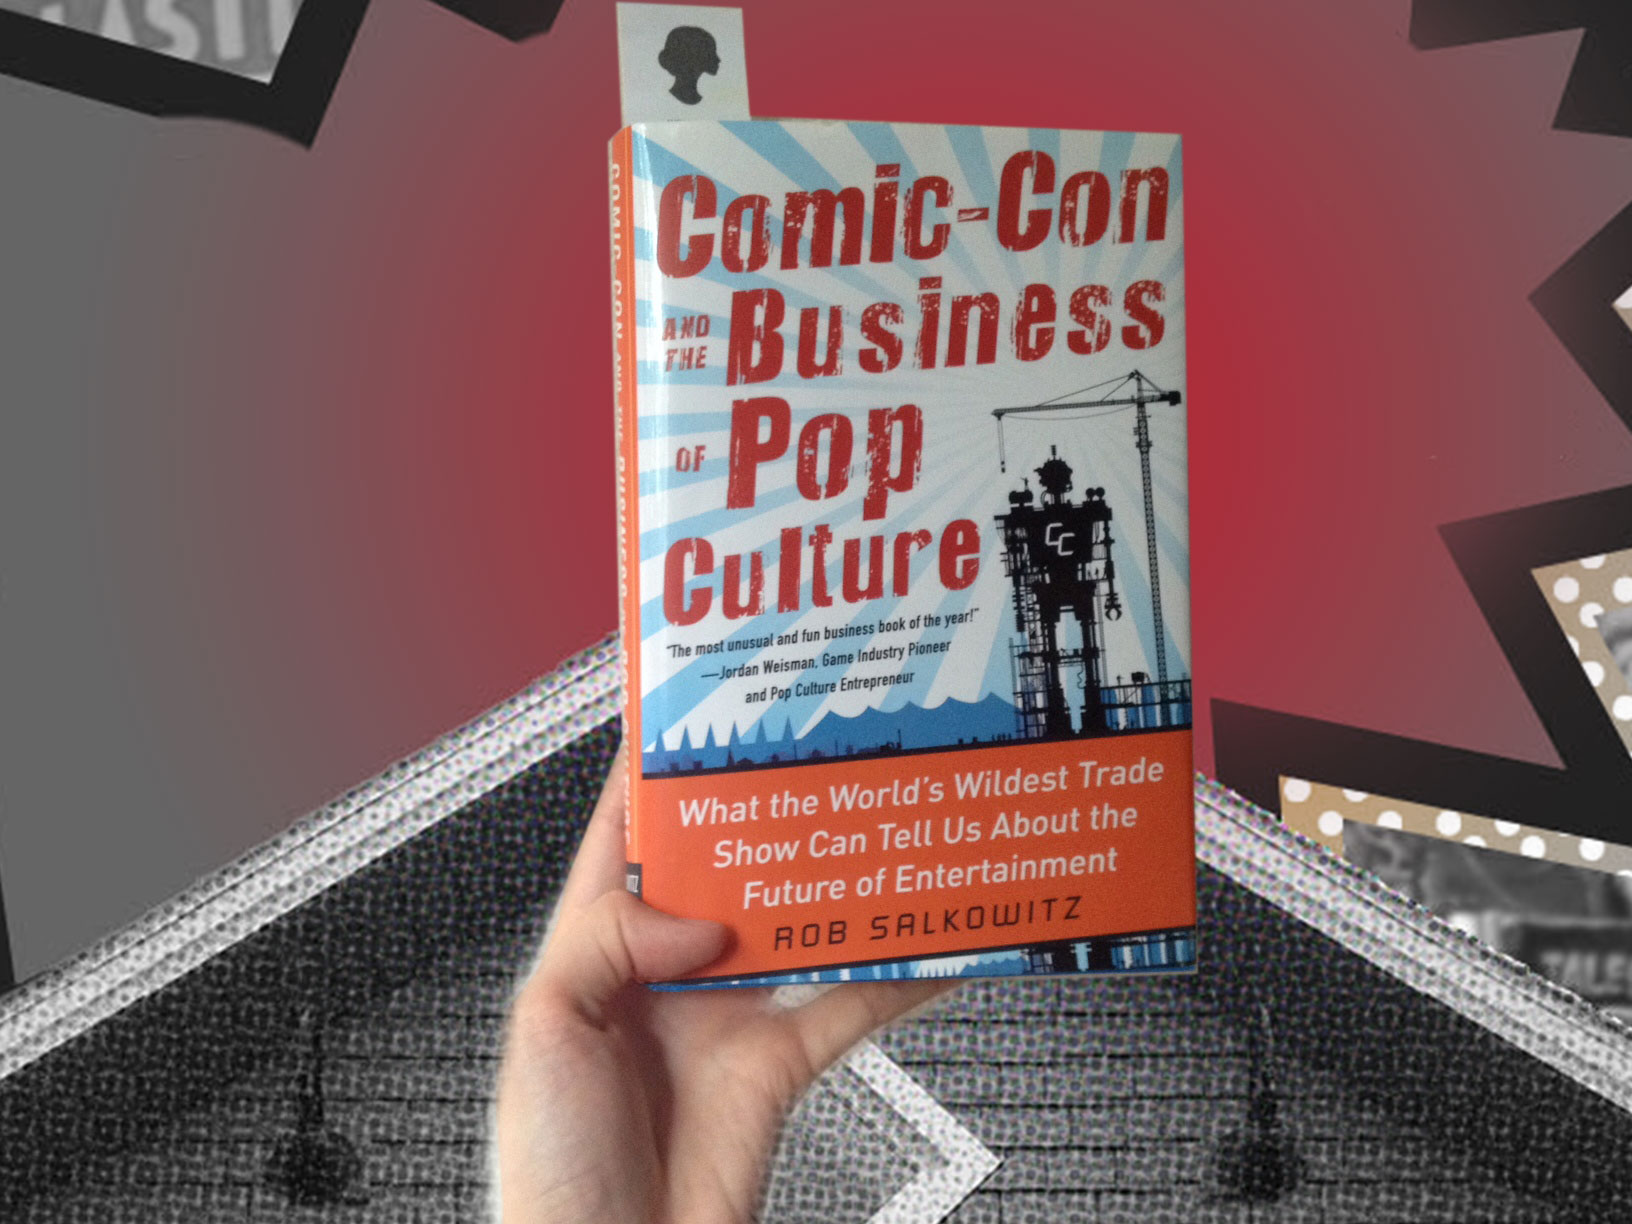 comic con and the business of pop culture by rob salkowitz